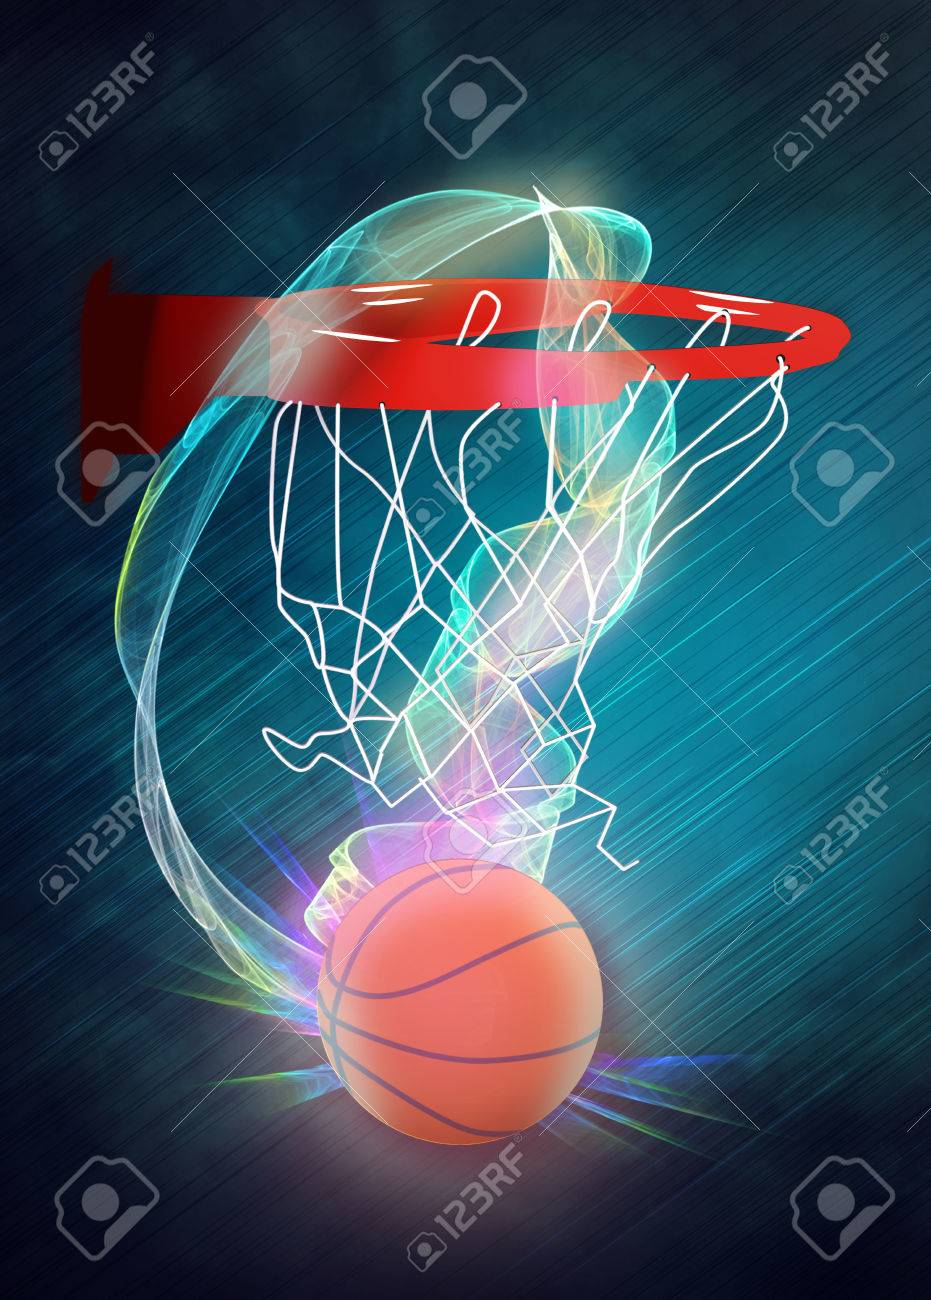 Basketball Hoop And Ball Sport Poster Or Flyer Background With ...